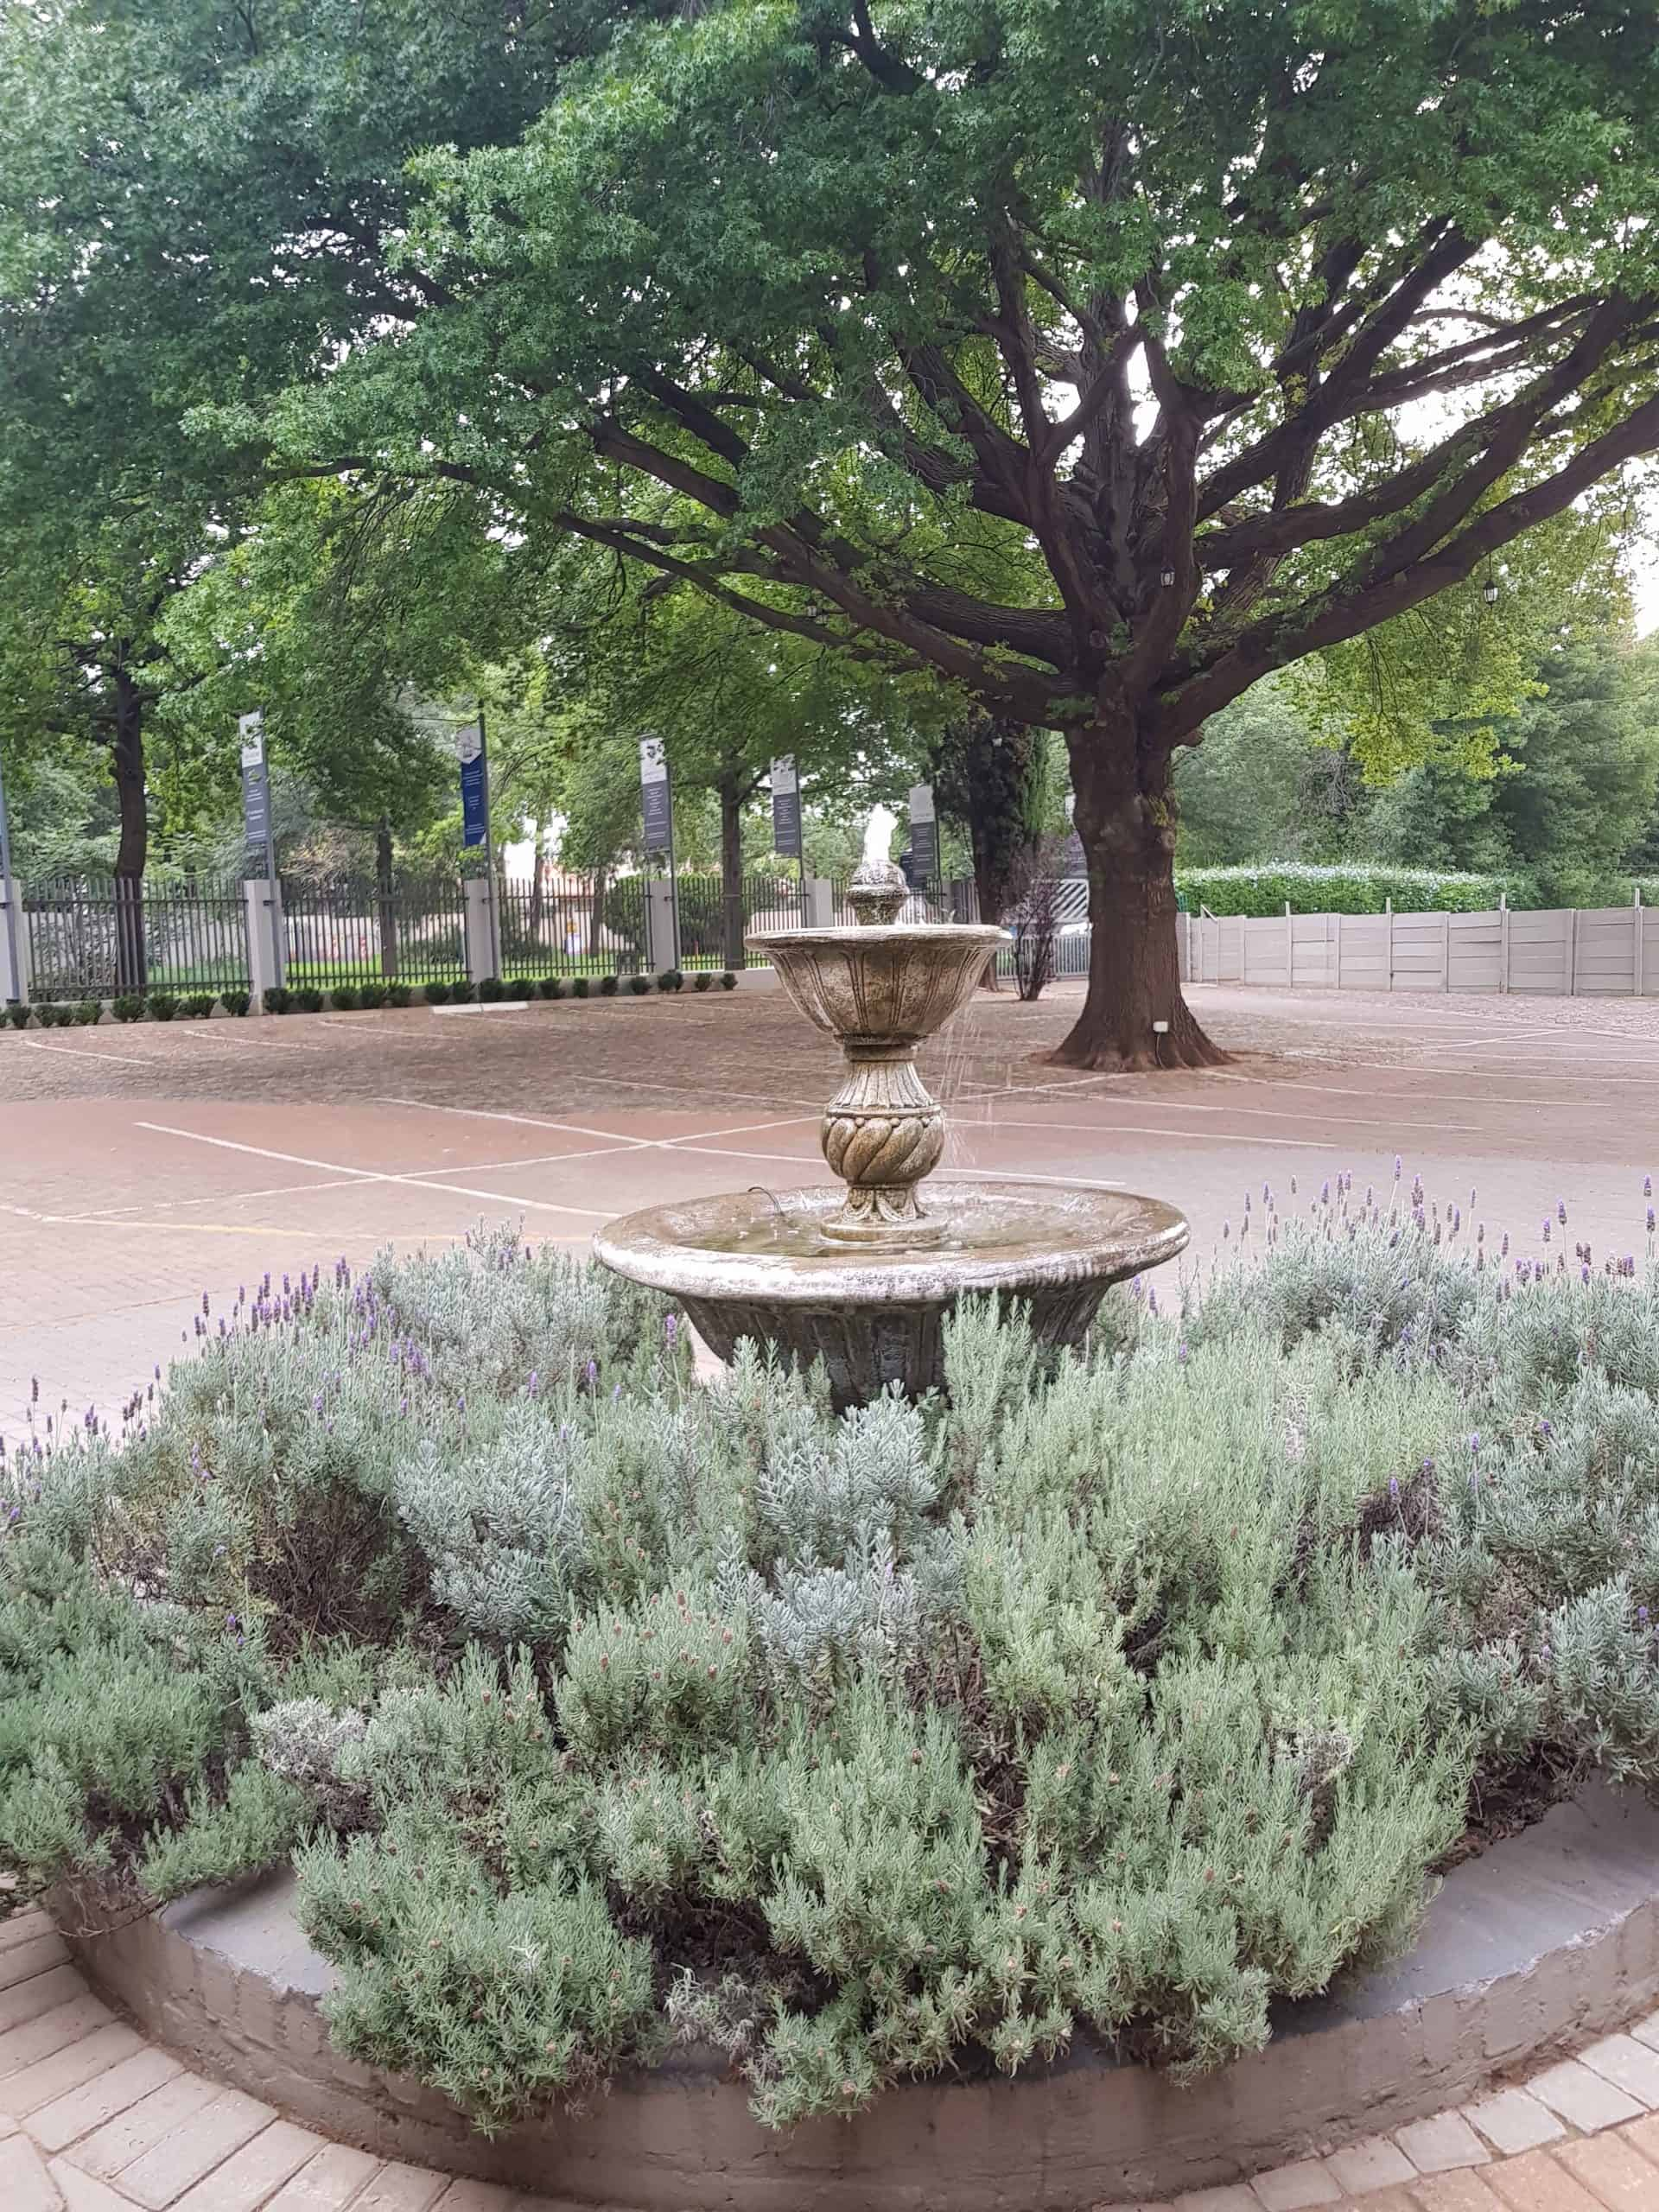 oaktree in parkign lot with a water feature in front scaled